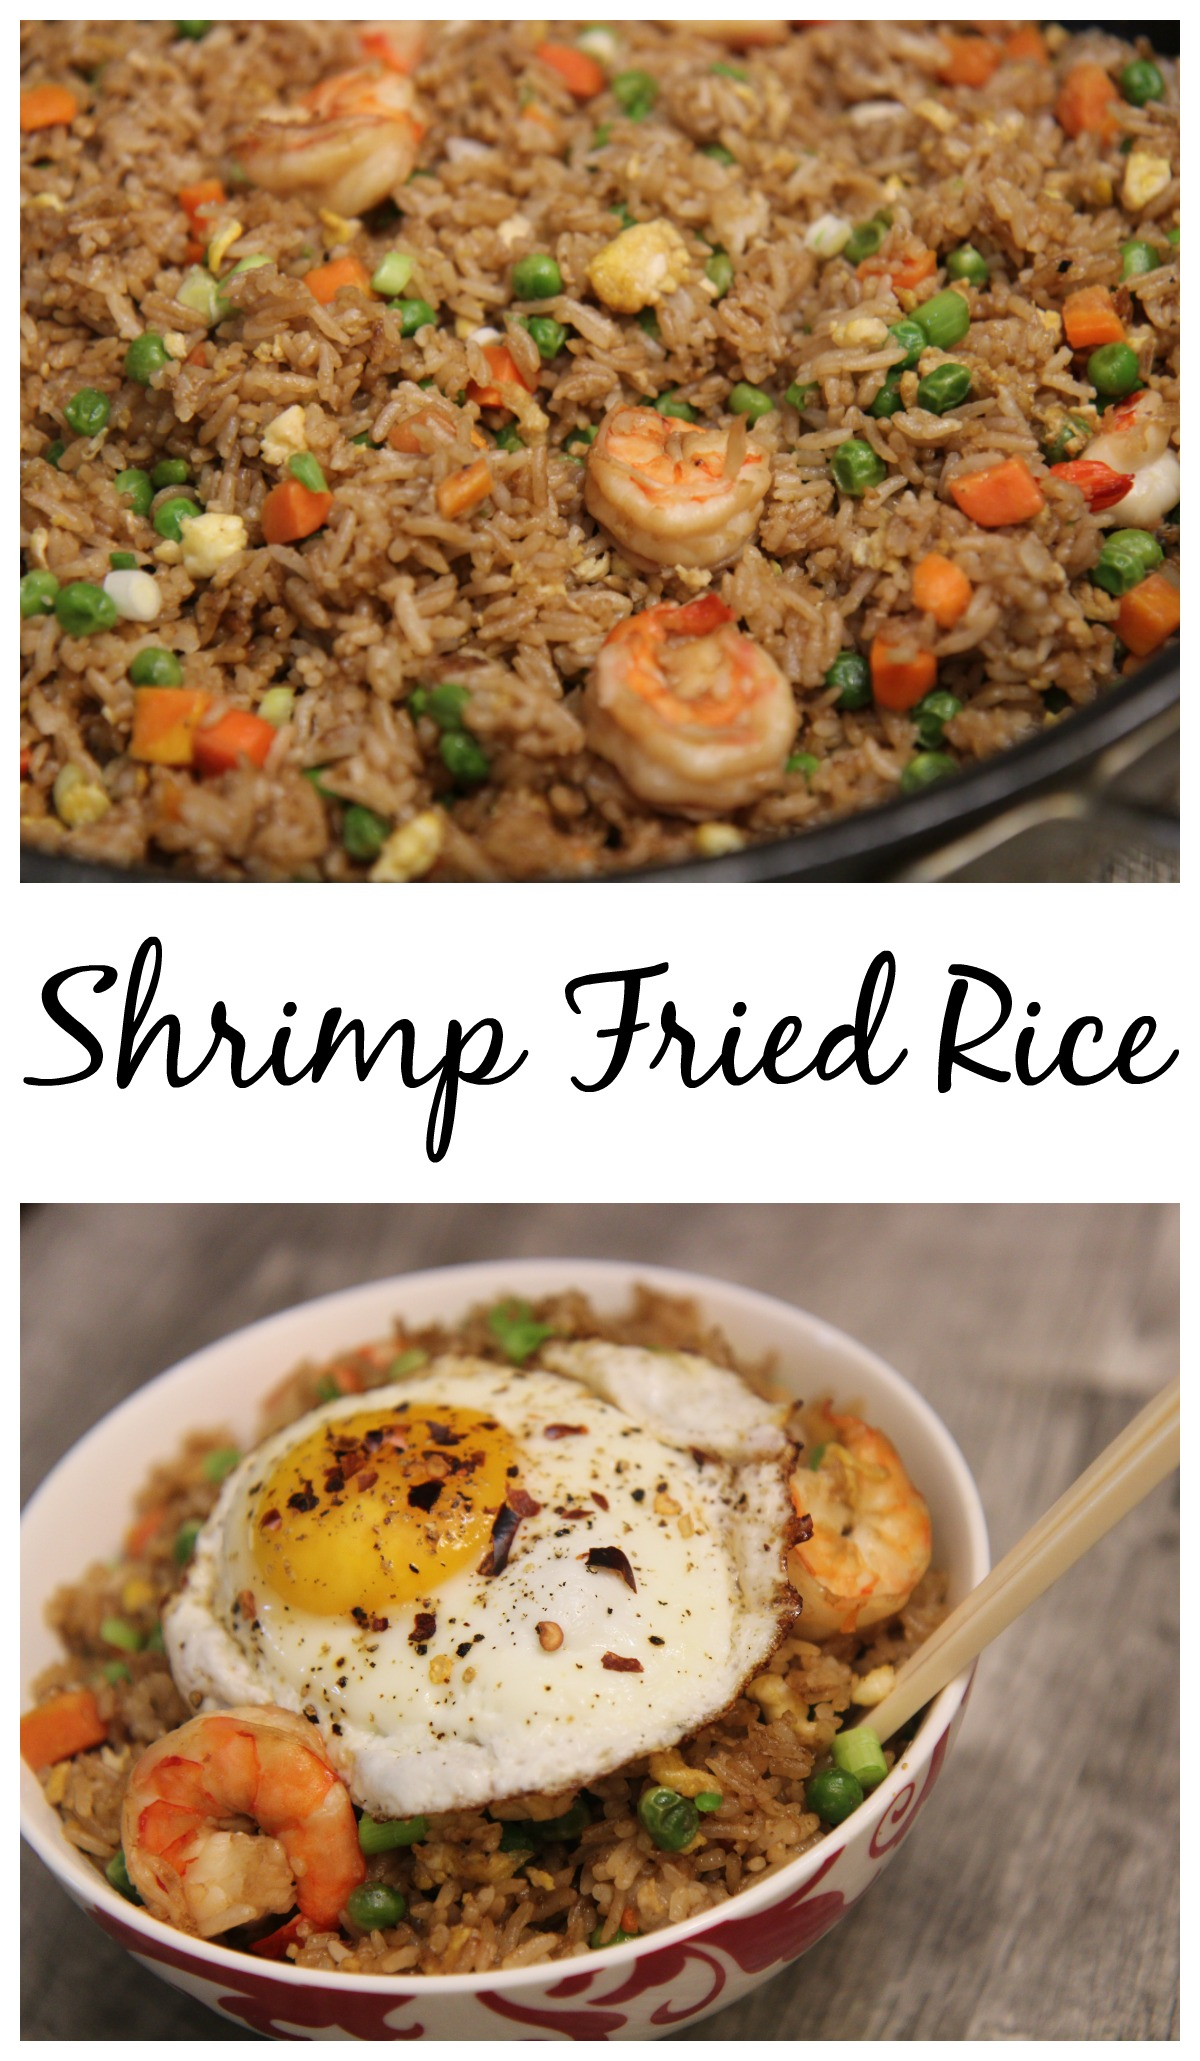 Shrimp Fried Rice | Cooked by Julie